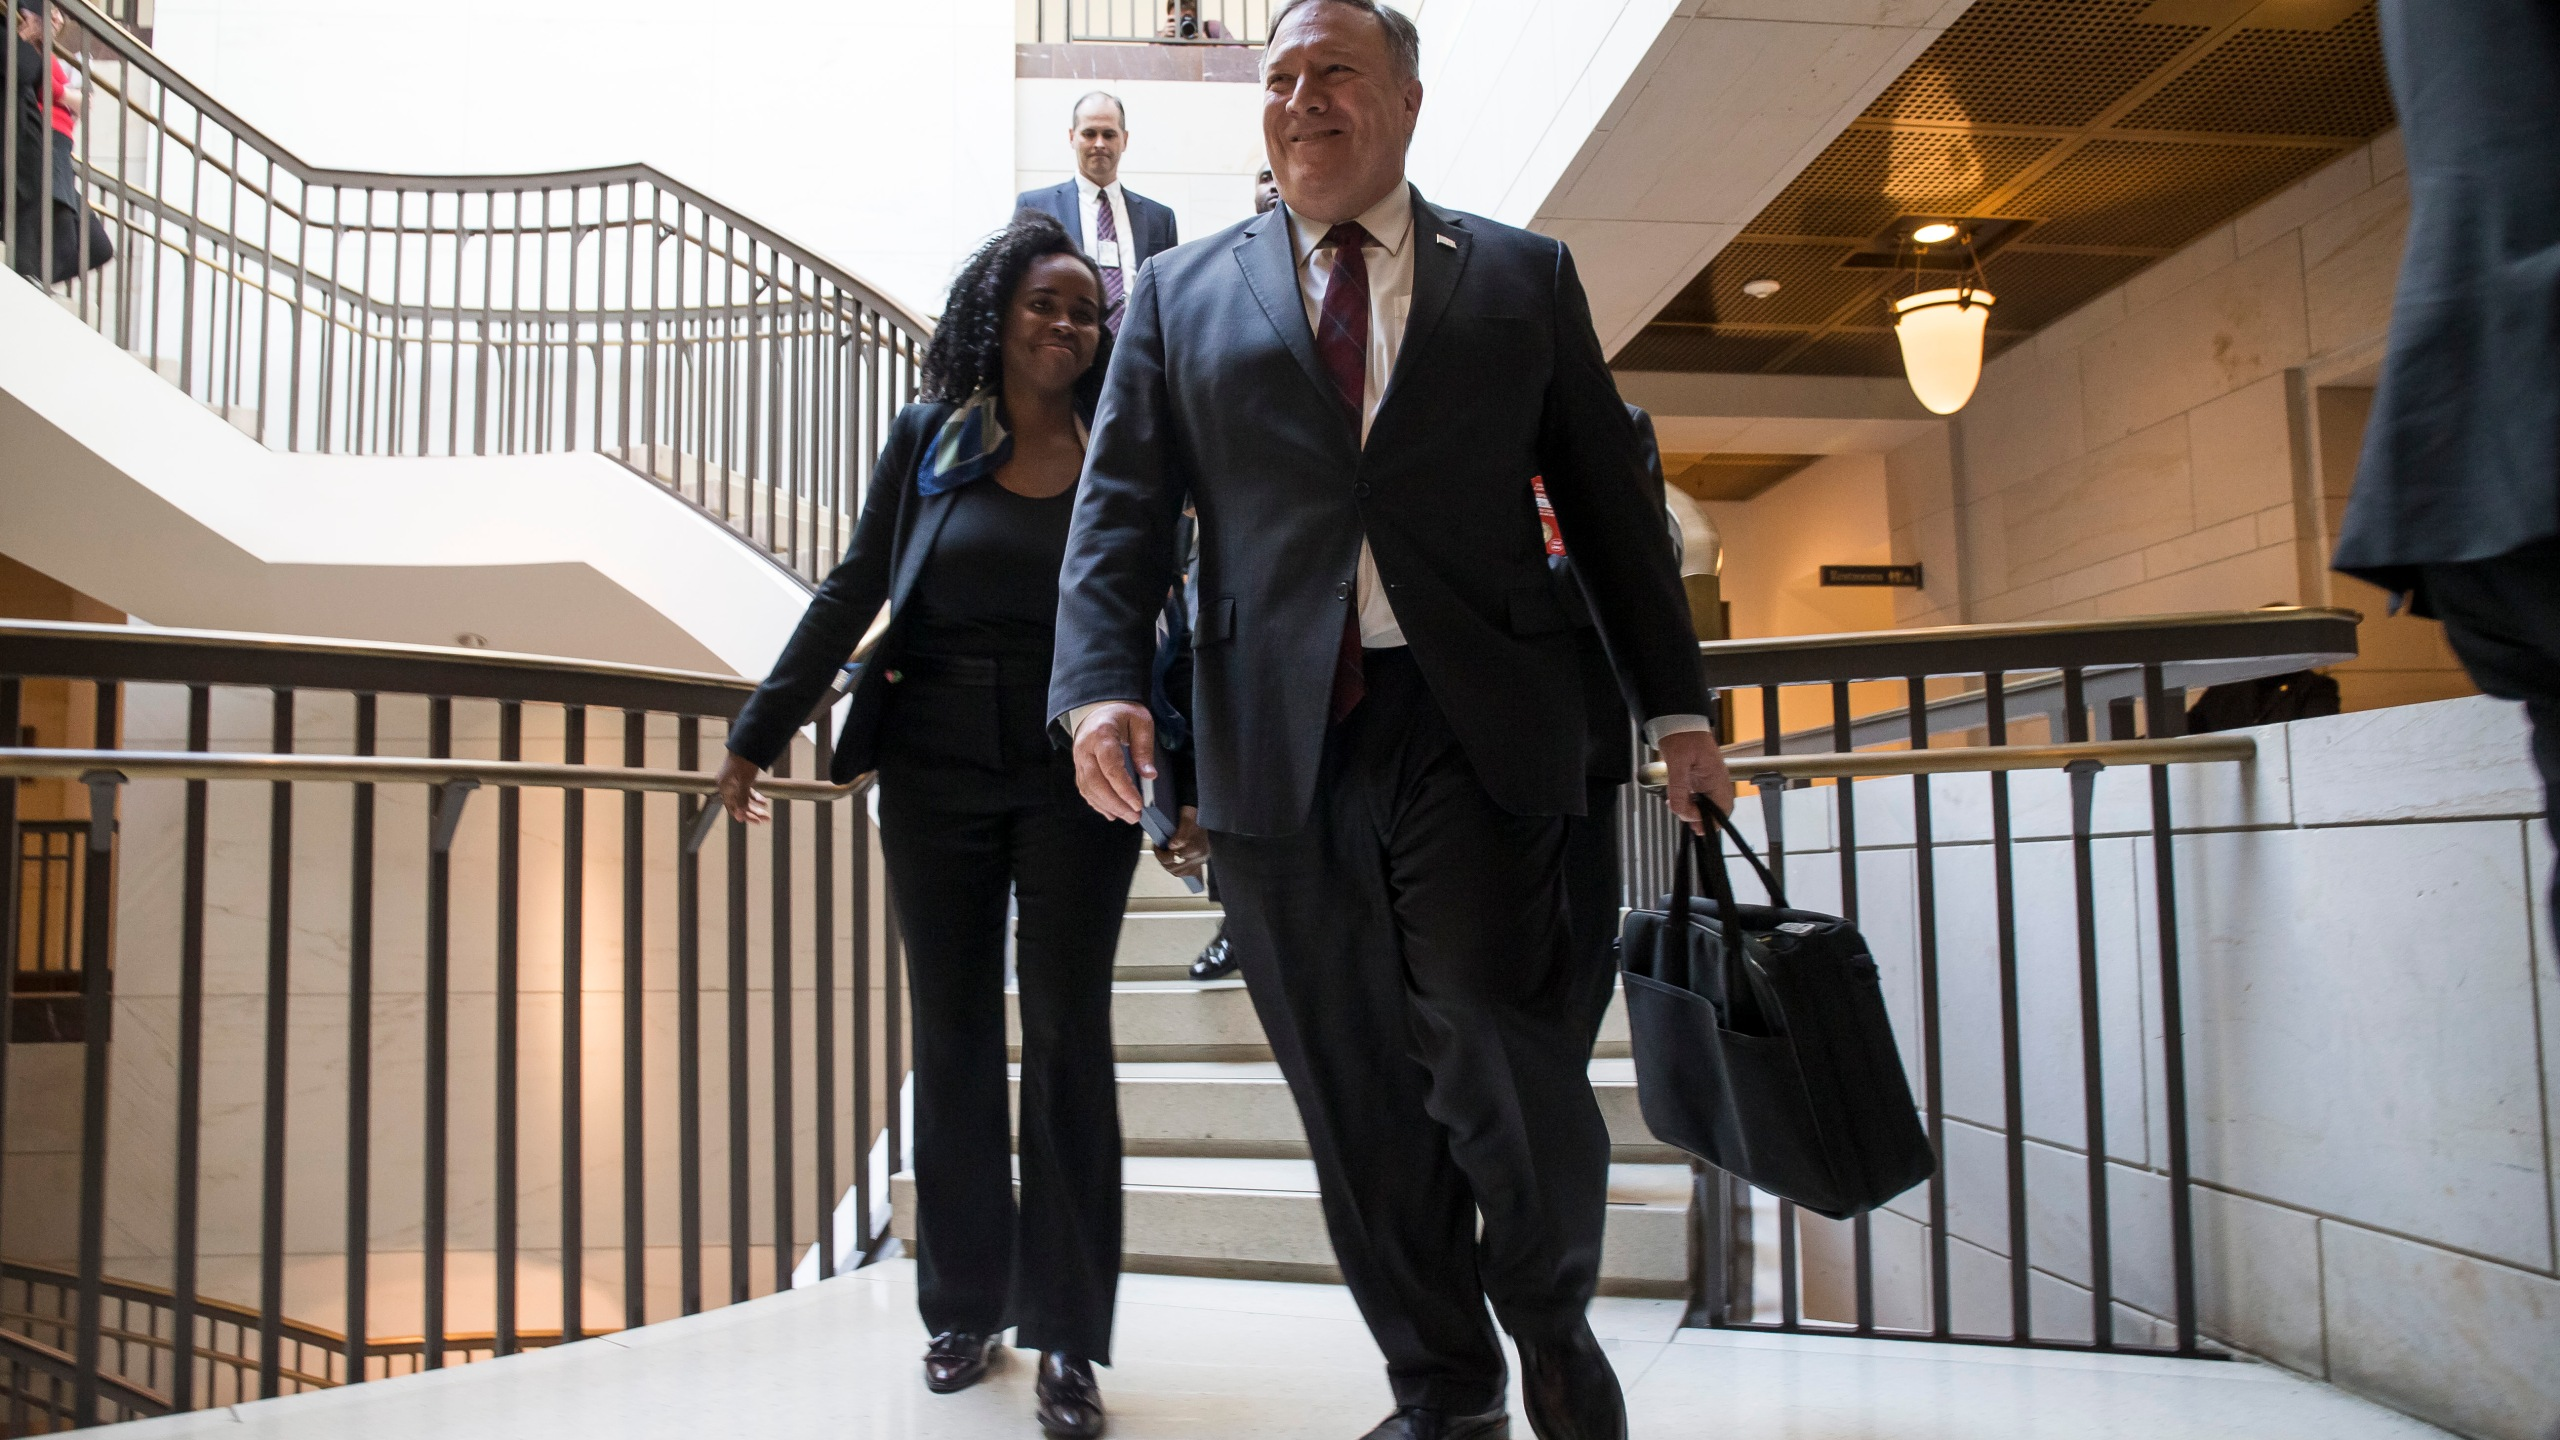 U.S. Secretary of State Mike Pompeo walks to a briefing with members of the Senate to discuss developments in Saudi Arabia on Nov. 28, 2018. (Credit: Zach Gibson/Getty Images)